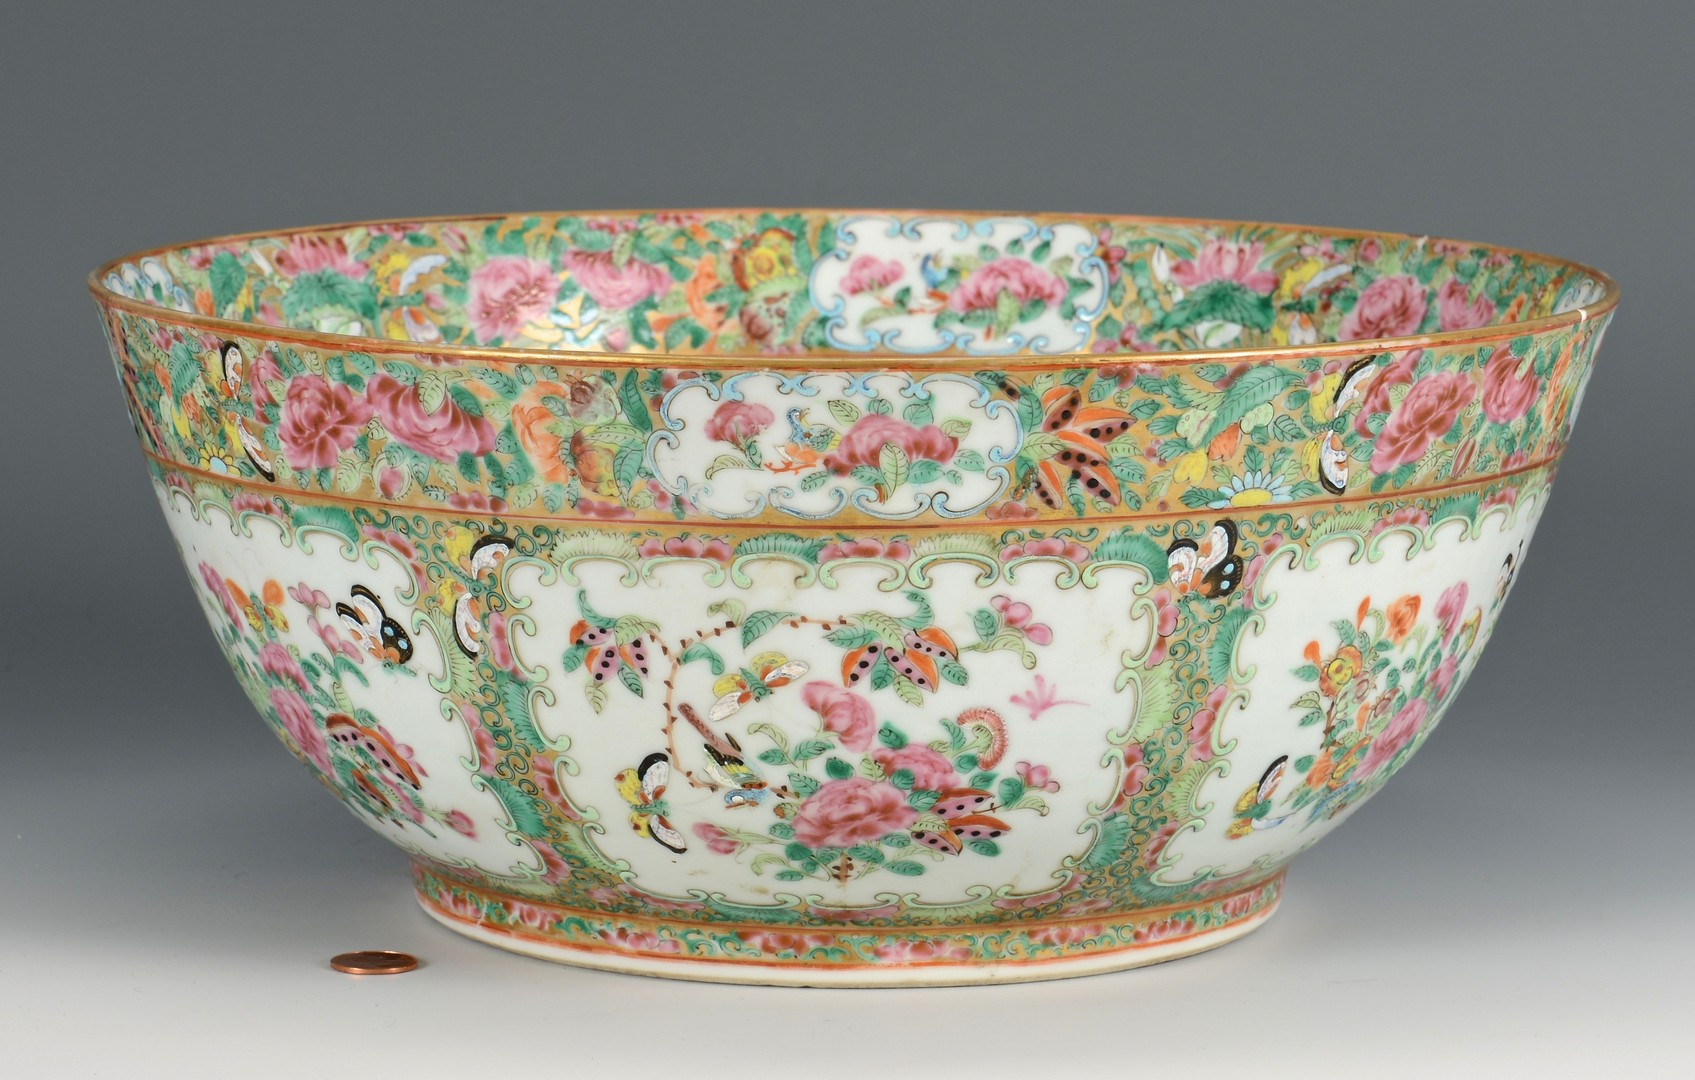 Lot 4010216: 19th c. Rose Medallion Punch Bowl